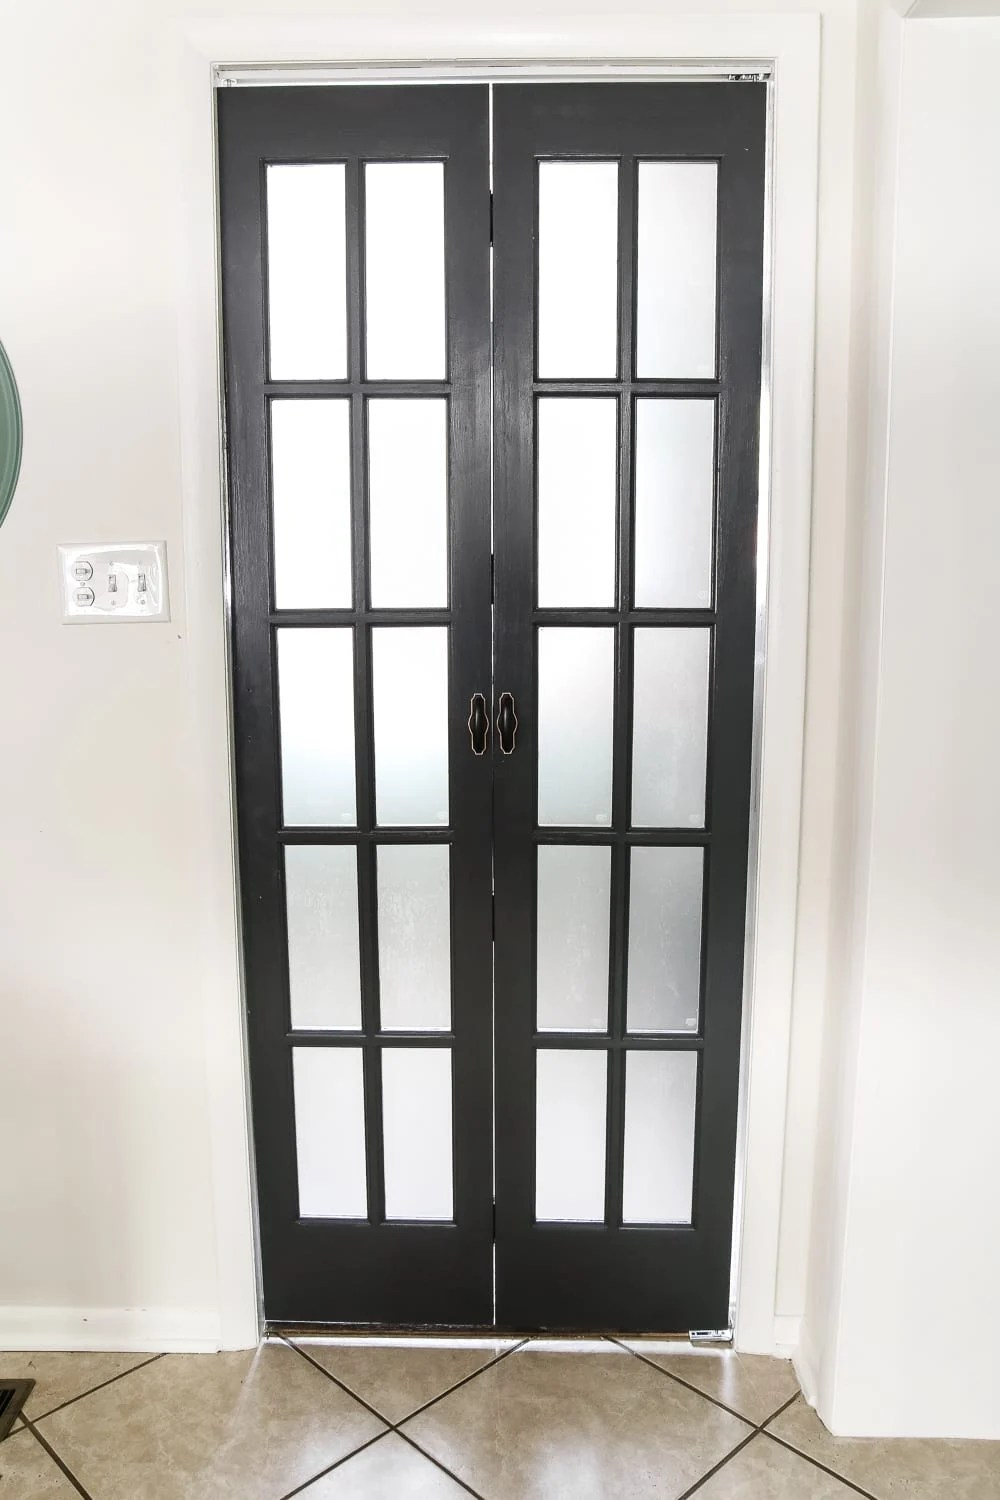 Laundry Room Updates: French Bifold Door | blesserhouse.com - A rickity laundry room bifold door gets a beautiful and functional update with a French bifold door with frosted glass for hiding messes in a stylish way.